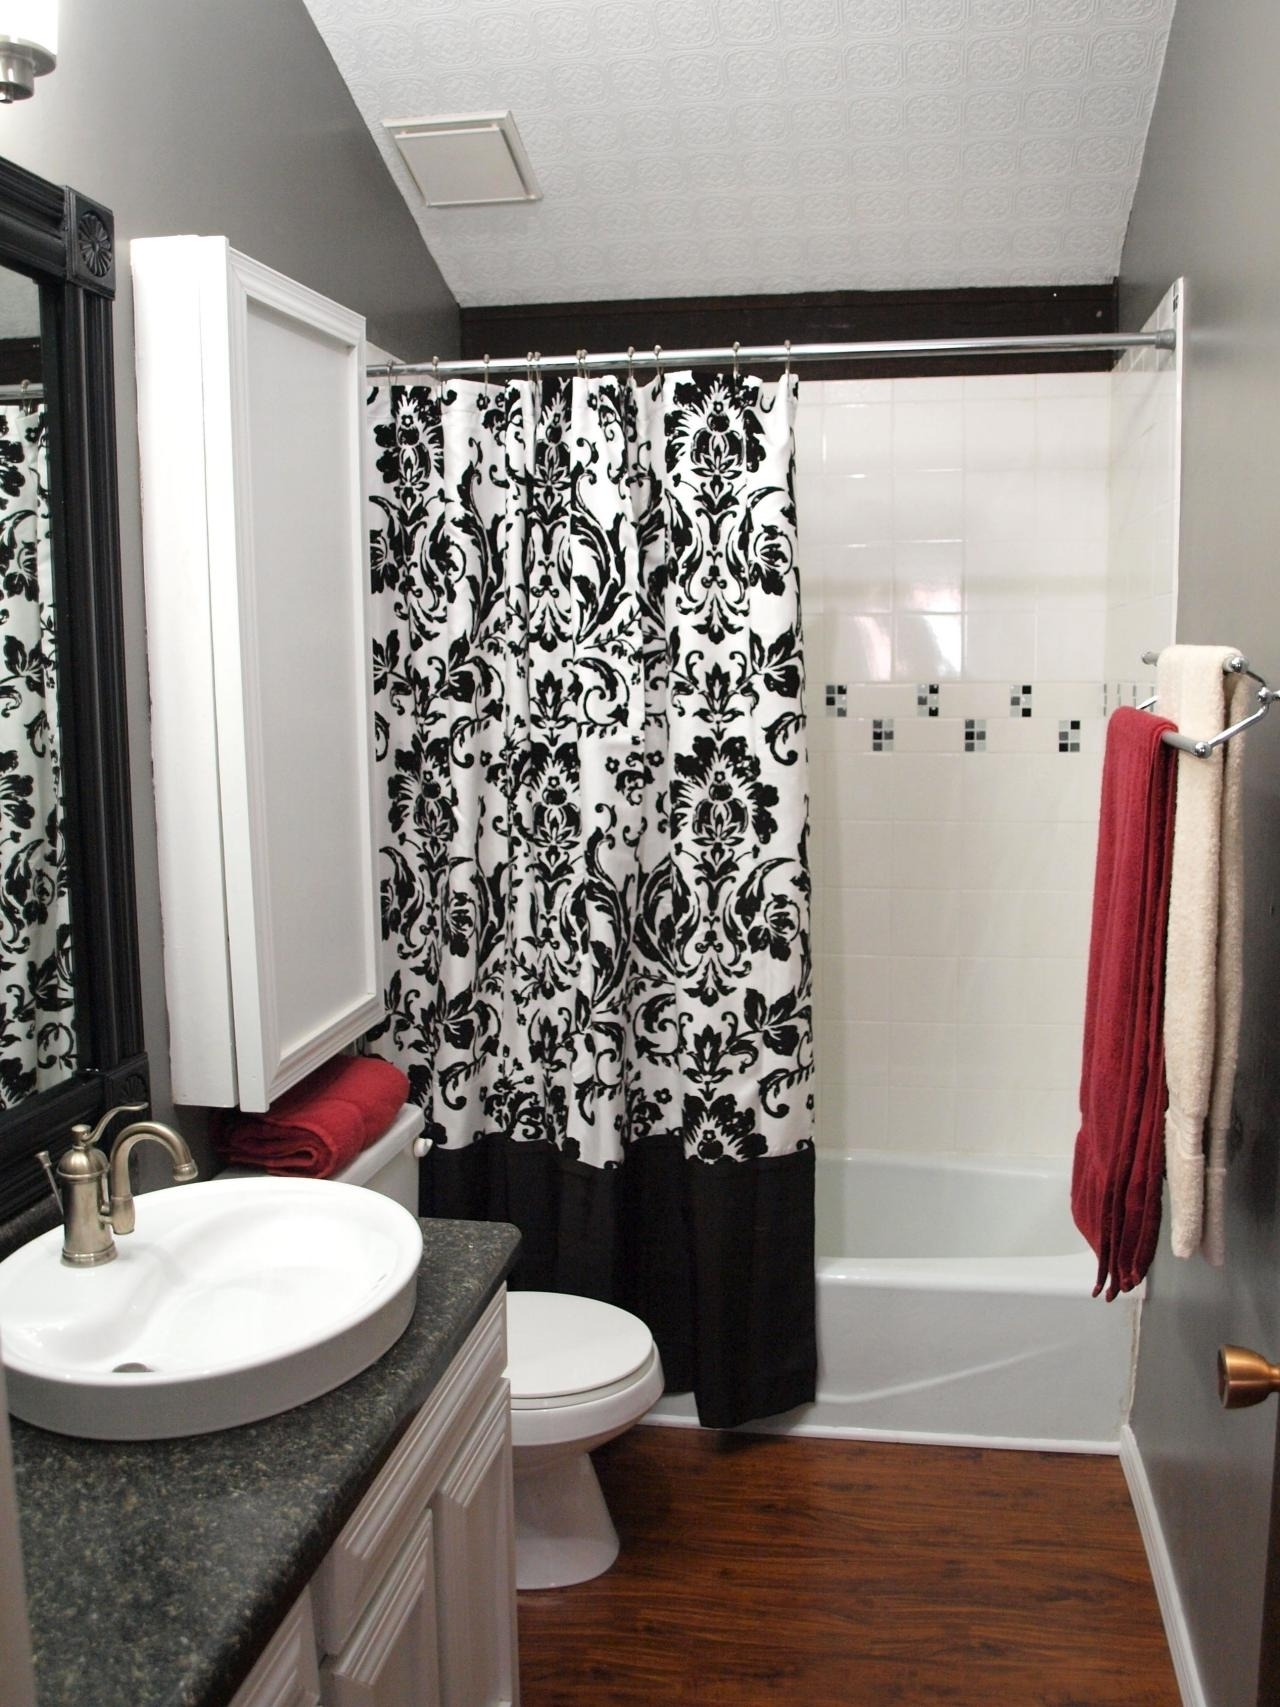 Enchanting Black White And Red Bathroom Decorating Ideas Decor At Layjao